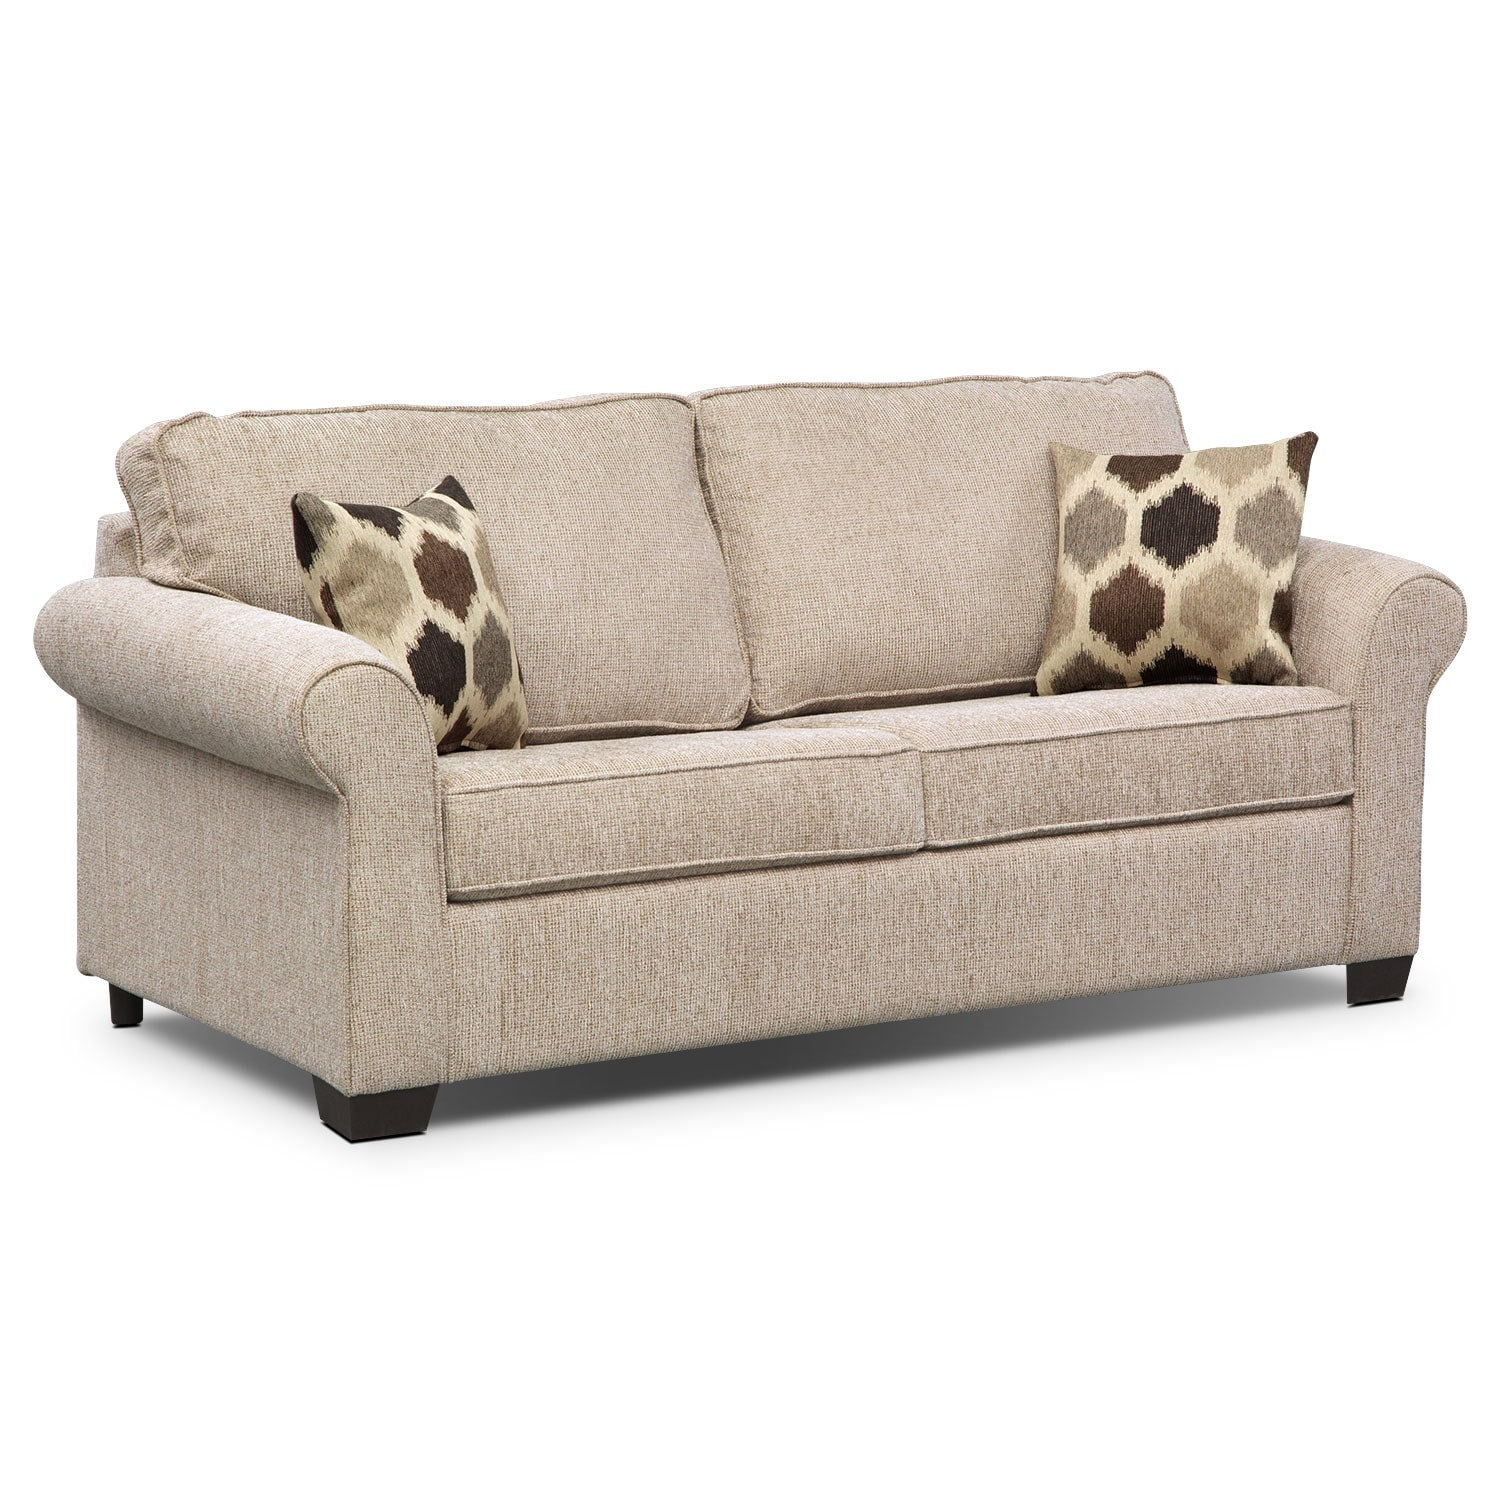 Bon Fletcher Full Innerspring Sleeper Sofa   Beige By Factory Outlet